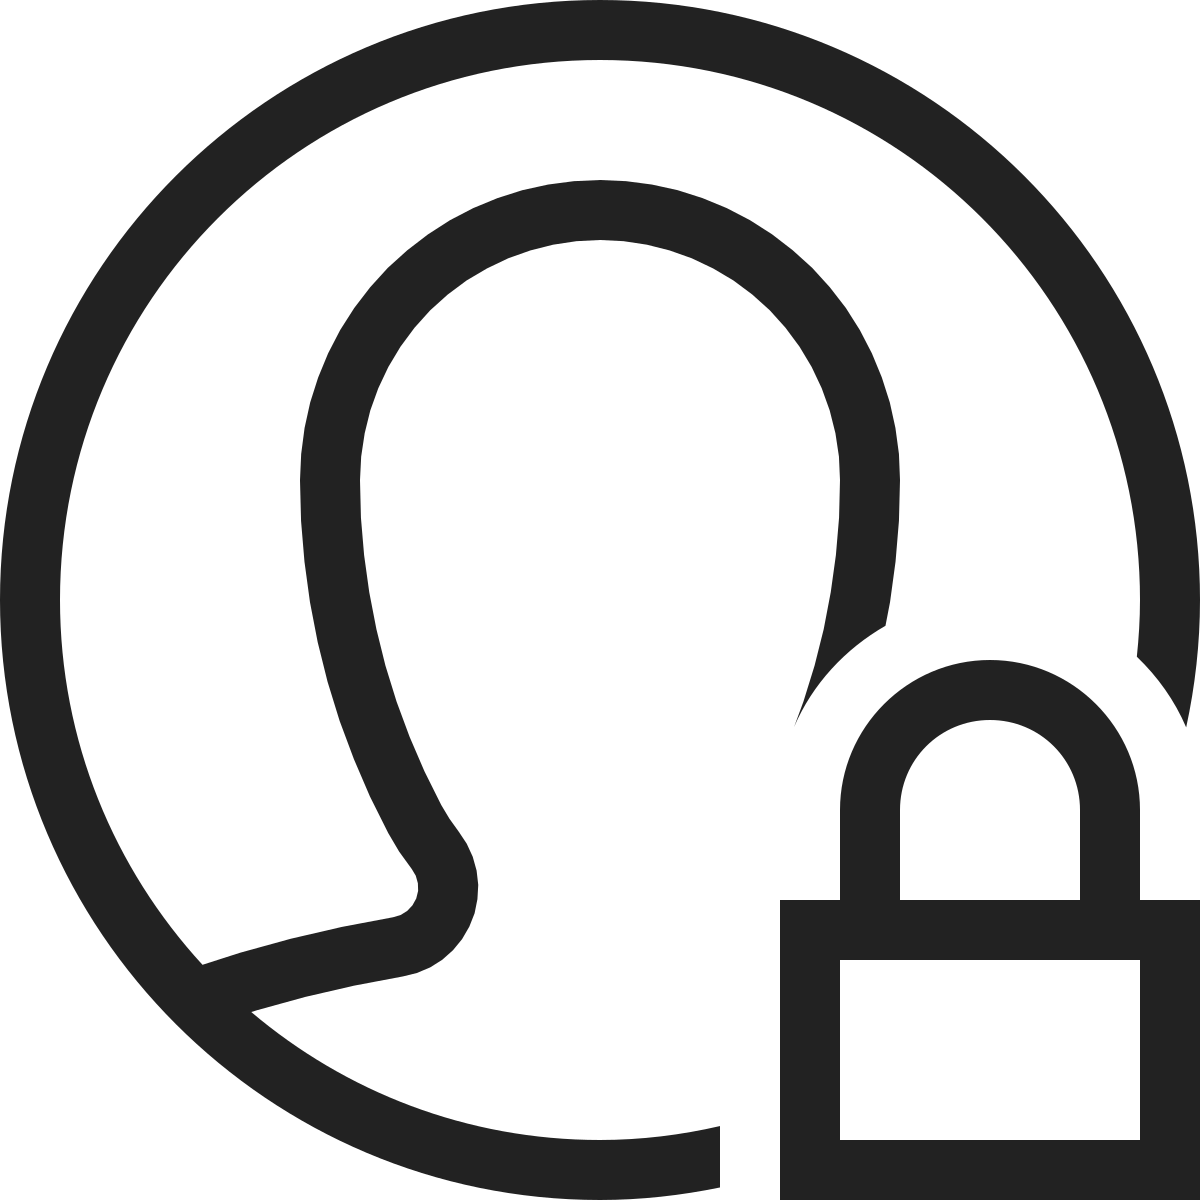 people  group  person  circle  user  profile  lock icon icon